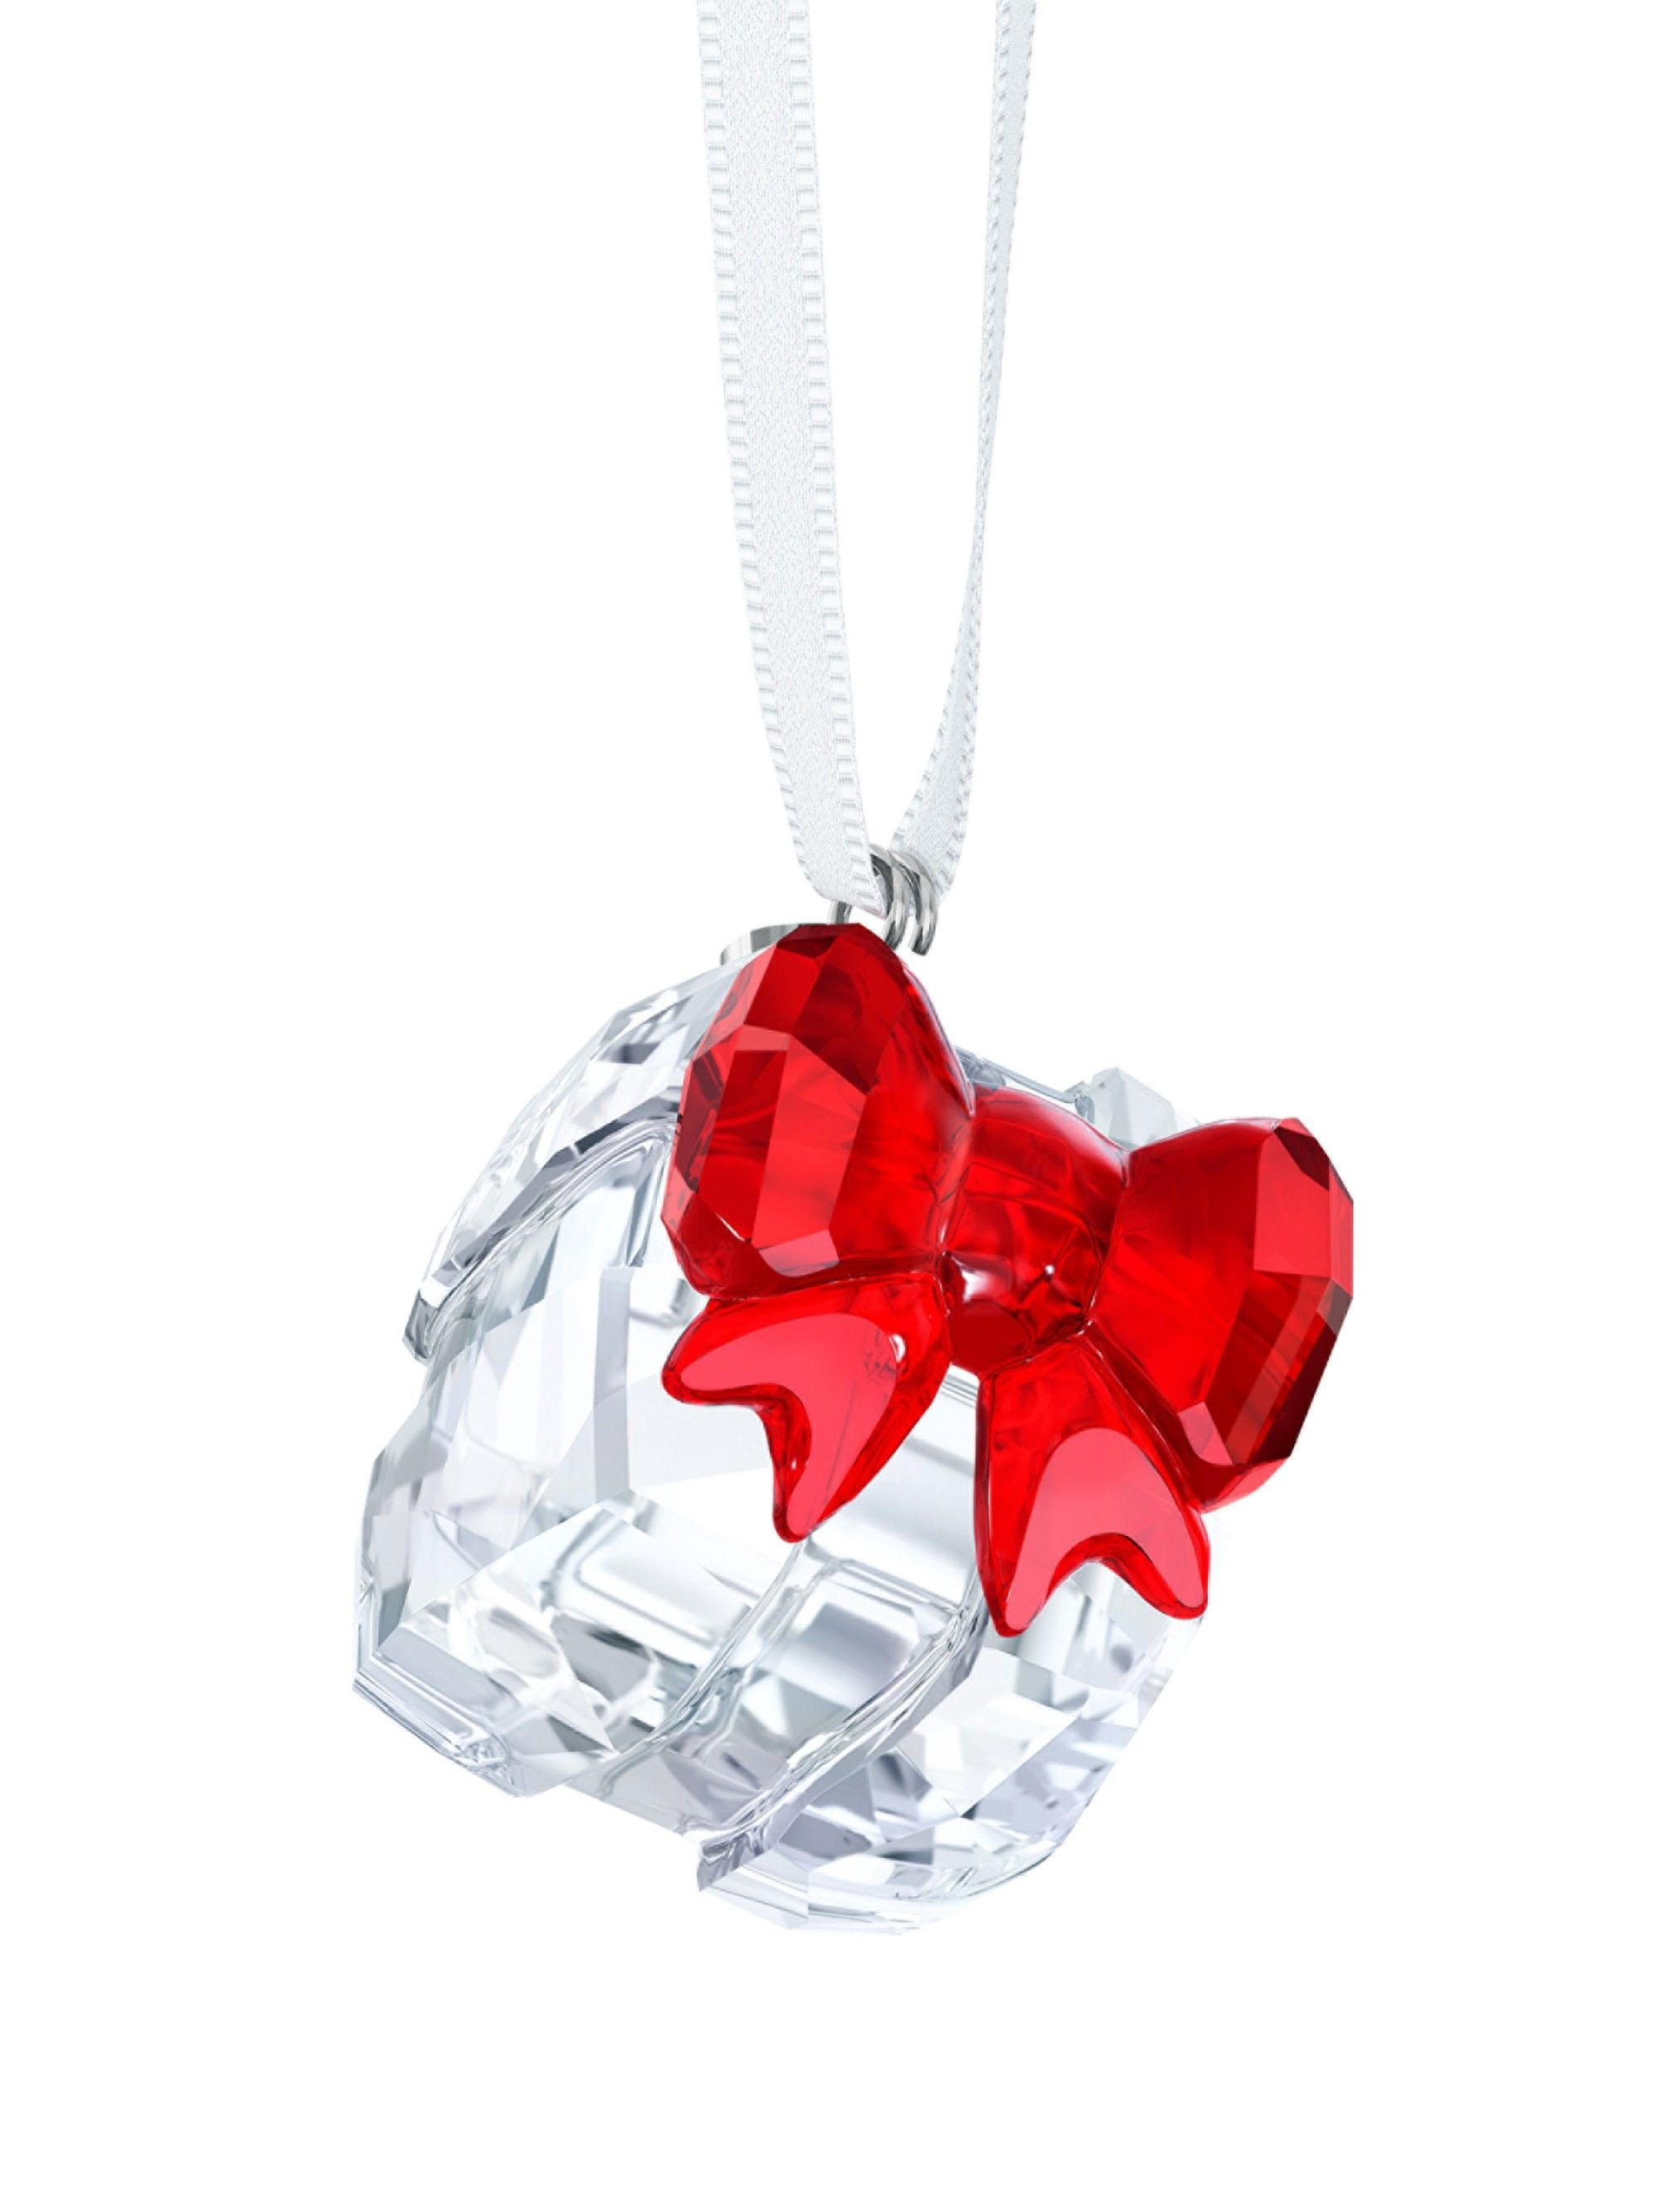 f093e7b40 Swarovski Crystal Gift Box Christmas Ornament | Products | Swarovski ...